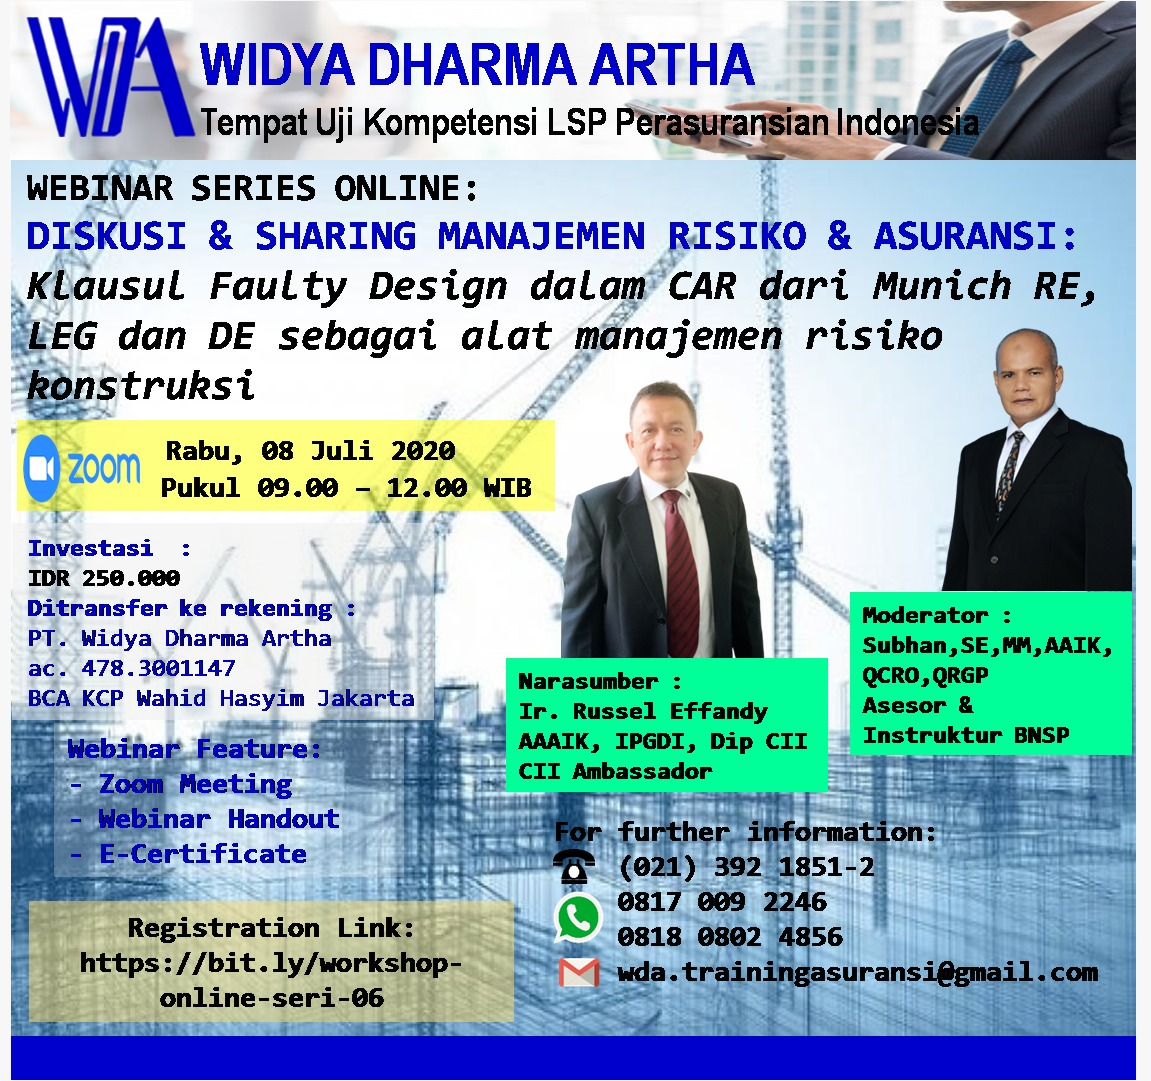 wda-webinar-faulty-design-dalam-car-rabu-08-juli-2020-0900-sd-1200